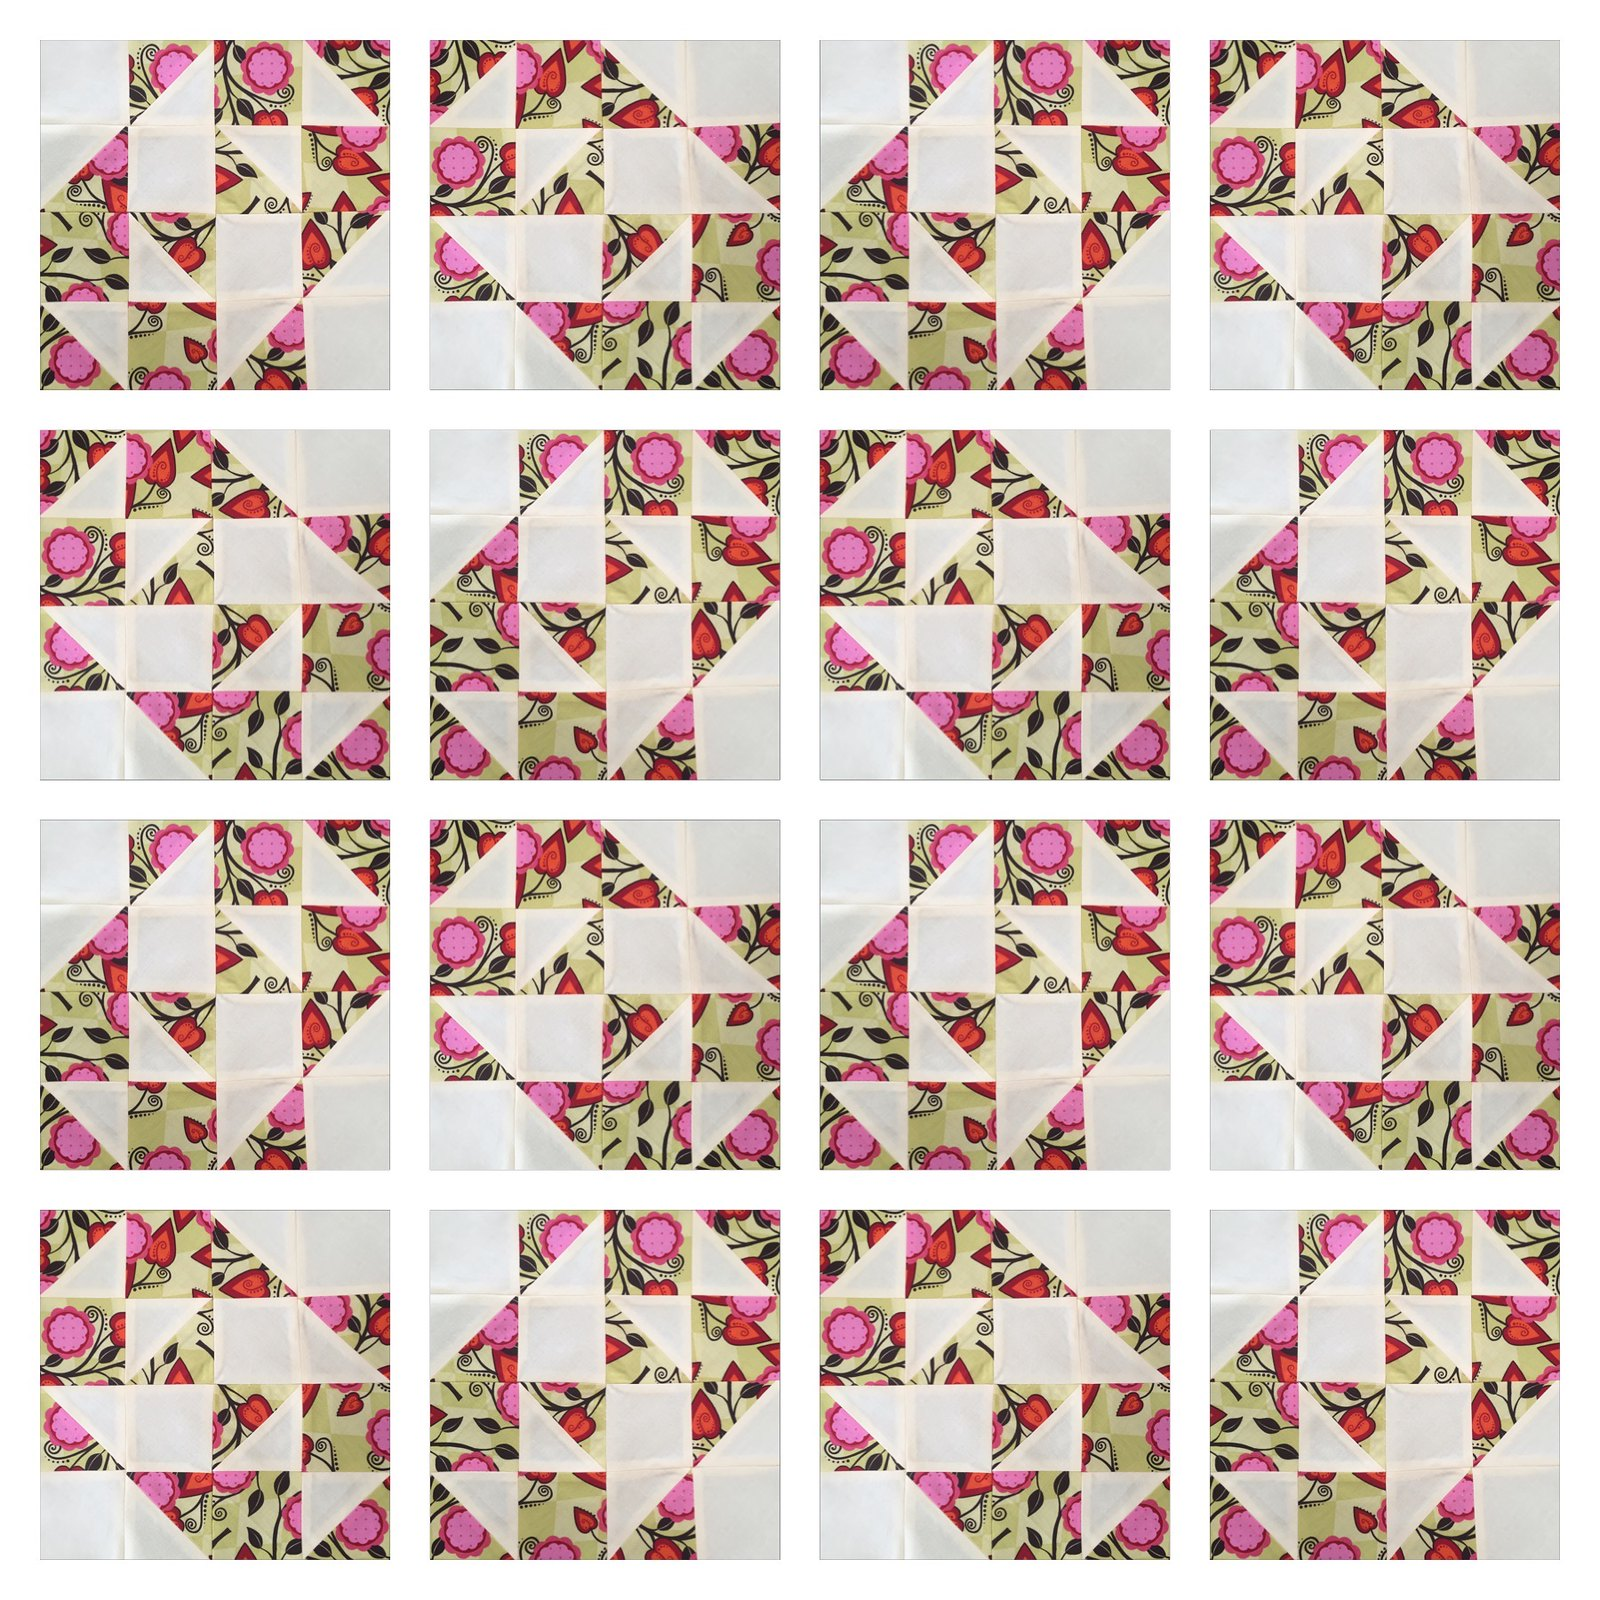 Half pinwheels and bows quilt block